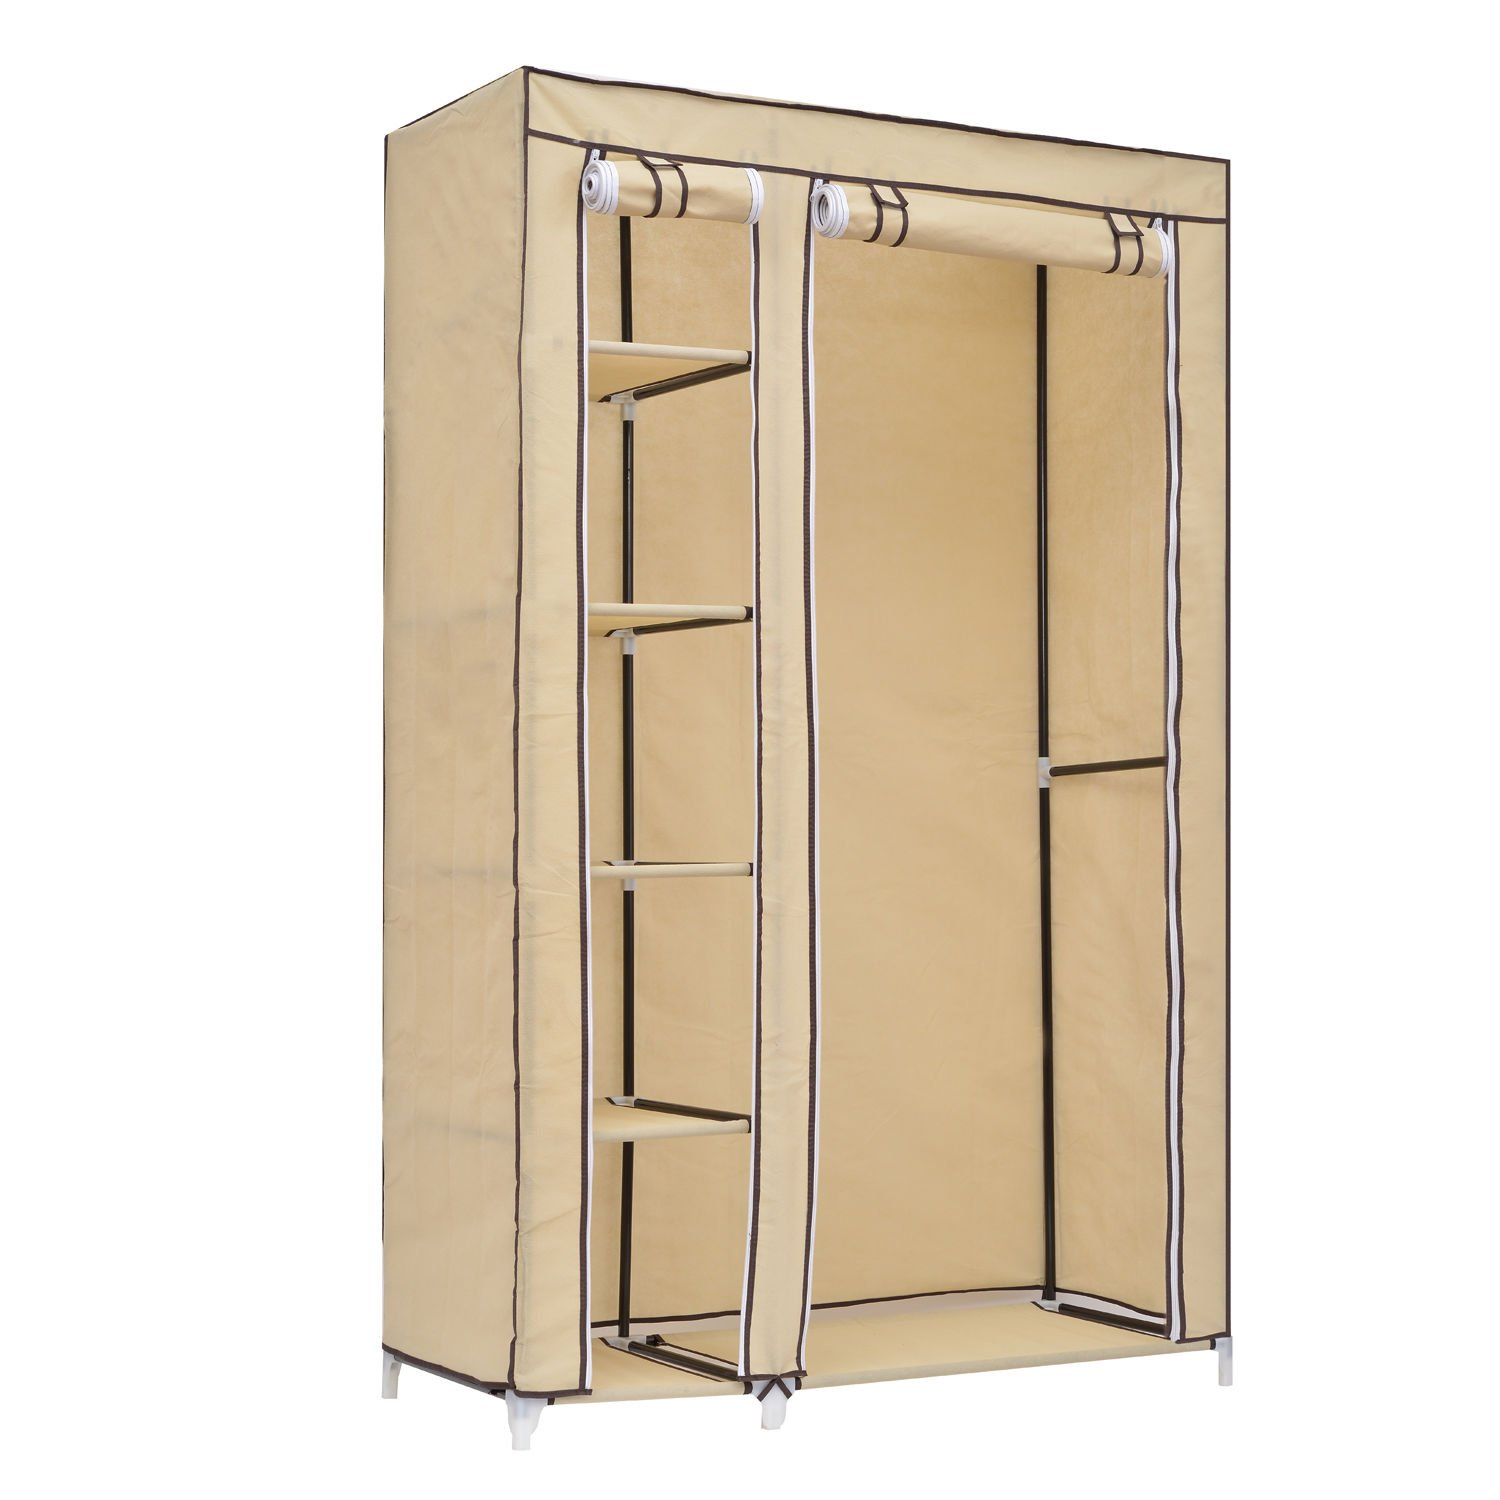 in as organizer walmart portable sta closets plastic drawers and closet famed invigorating space clos zq at storage rod ideas wells rack organization designs cute hanging organizers